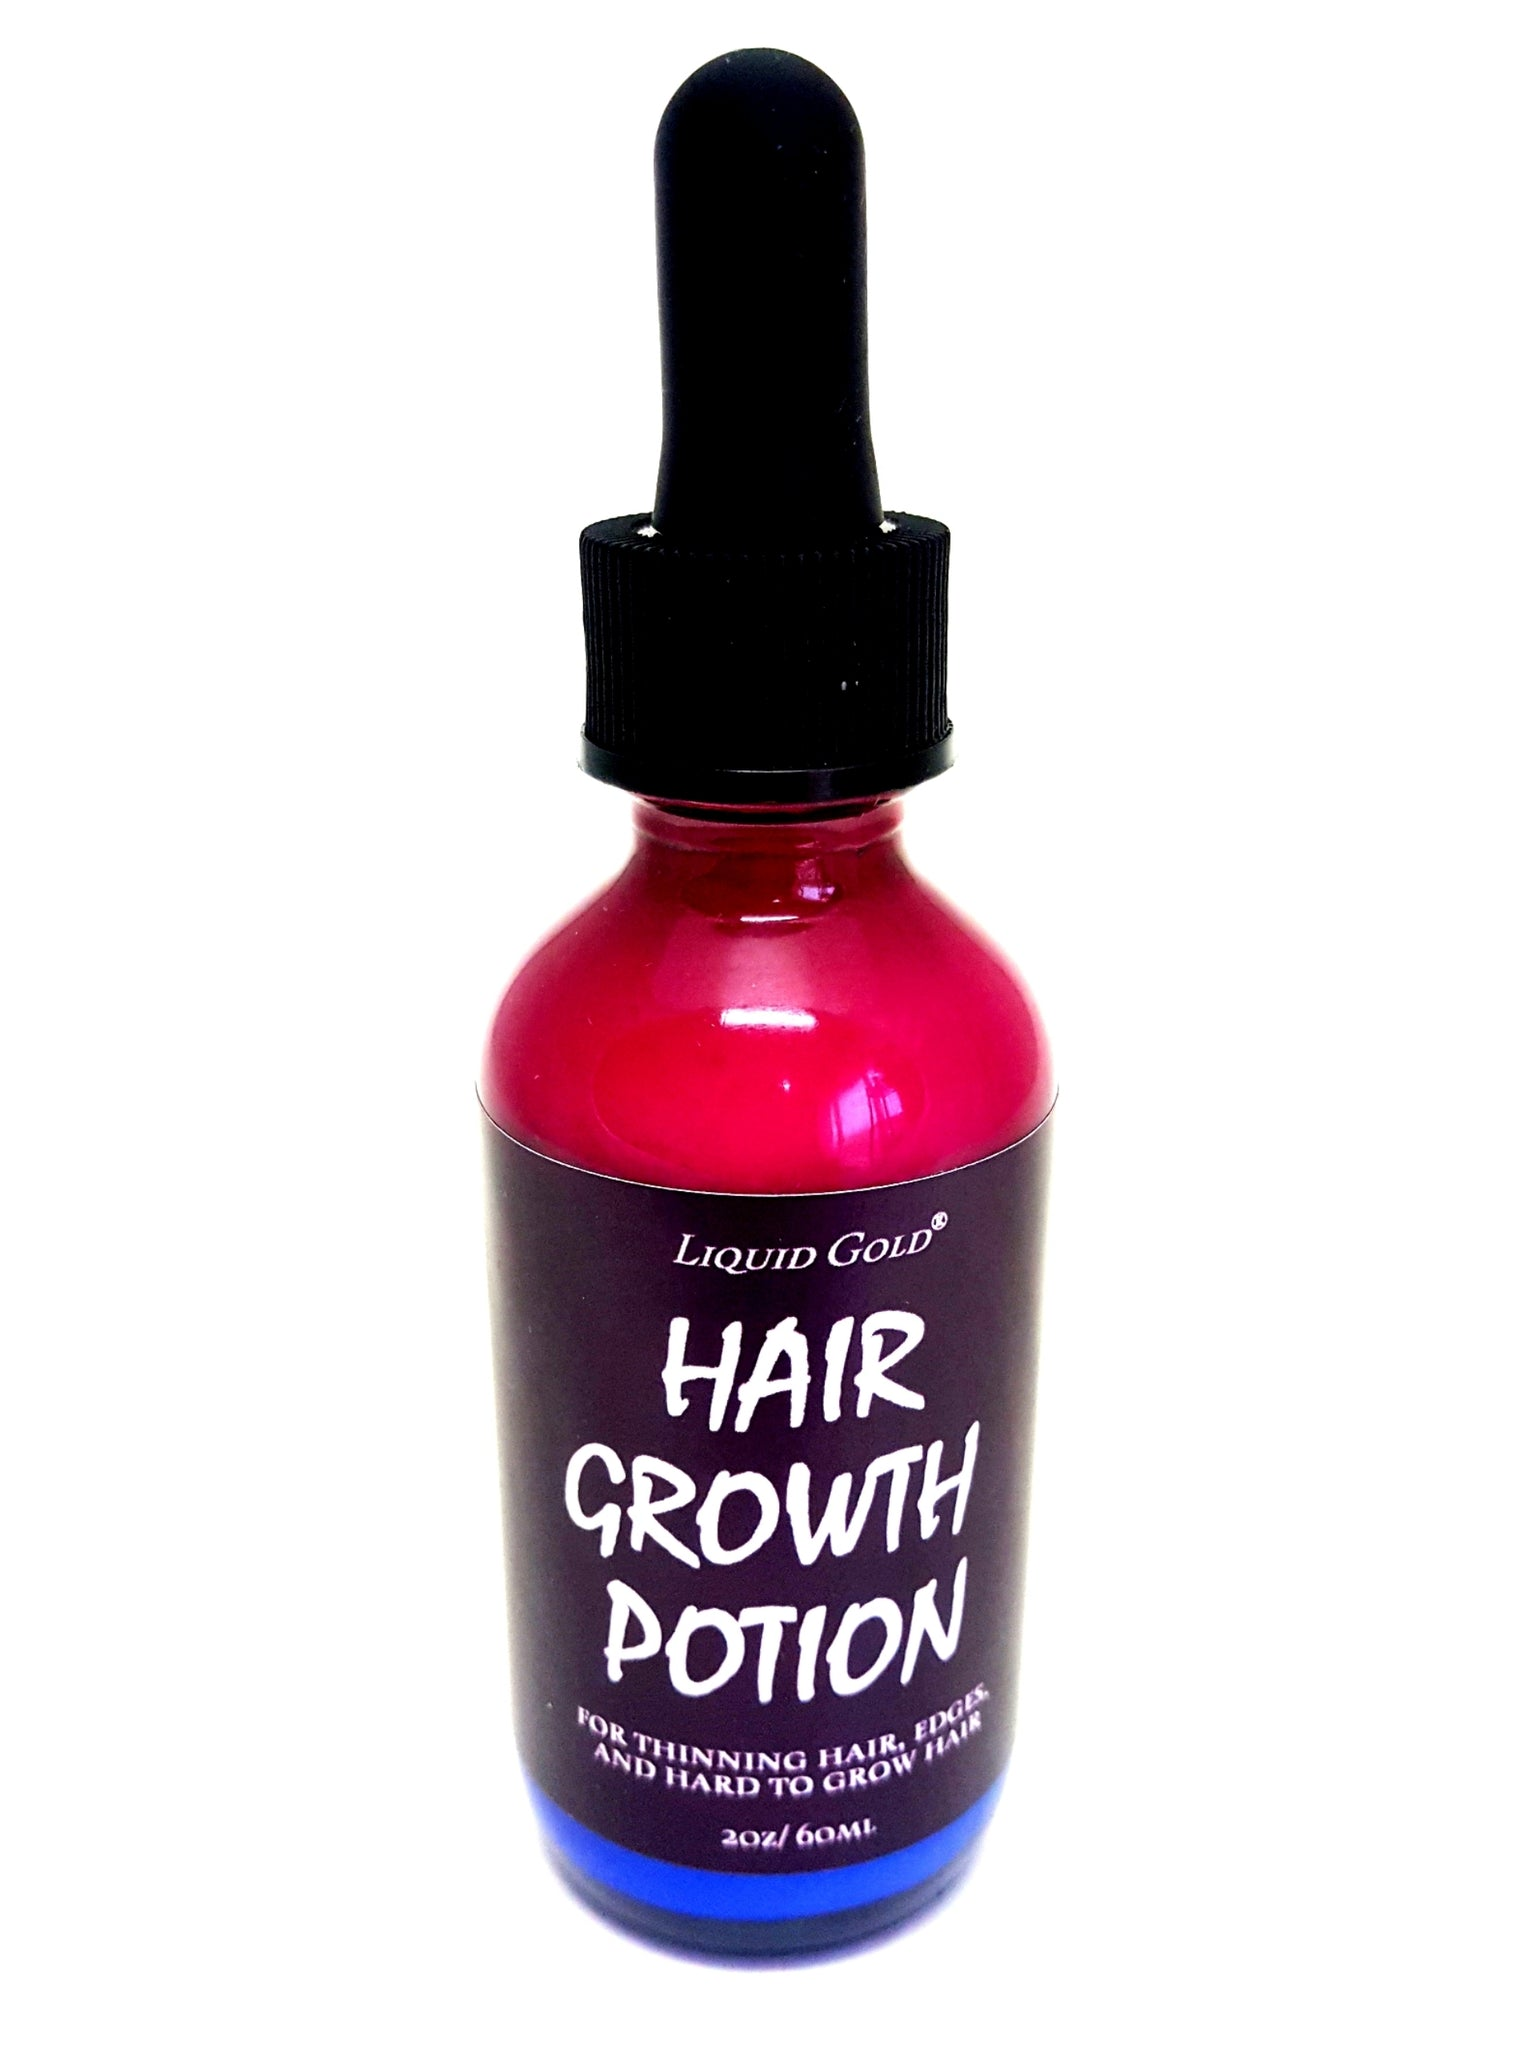 Hair Growth Potion for Longer Thicker Healthier Hair